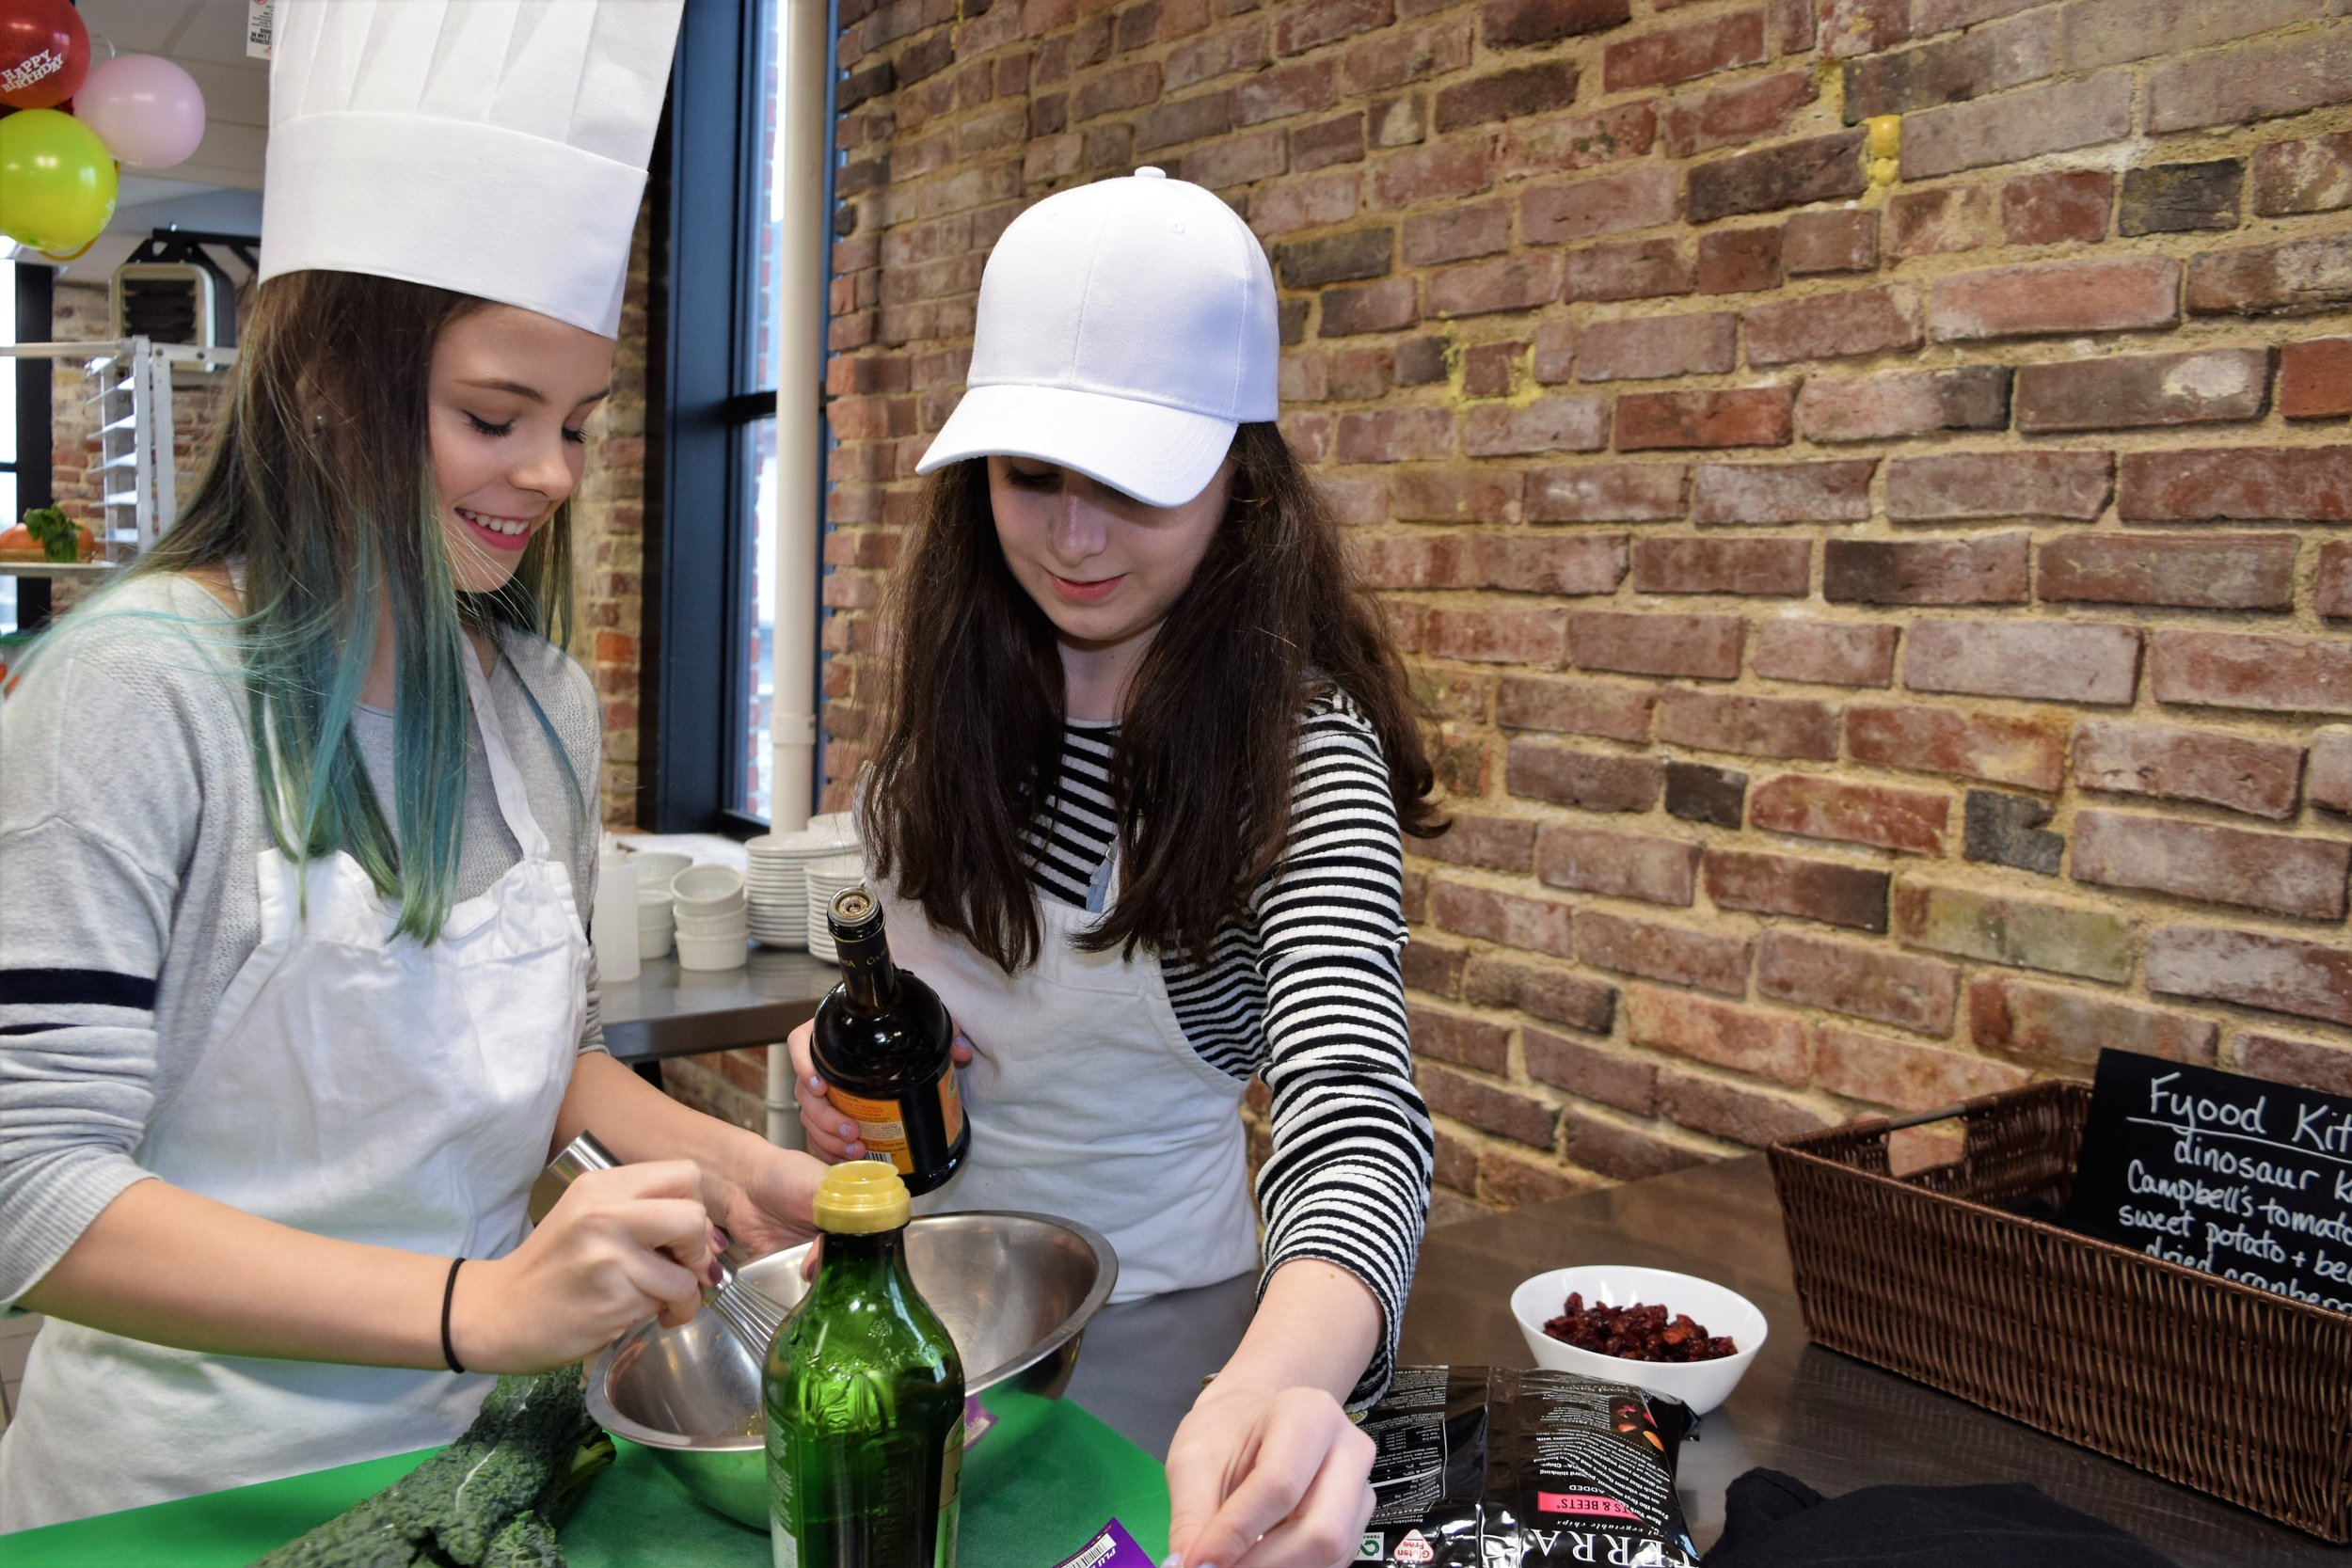 Teen girls birthday party cooking in professional kitchen